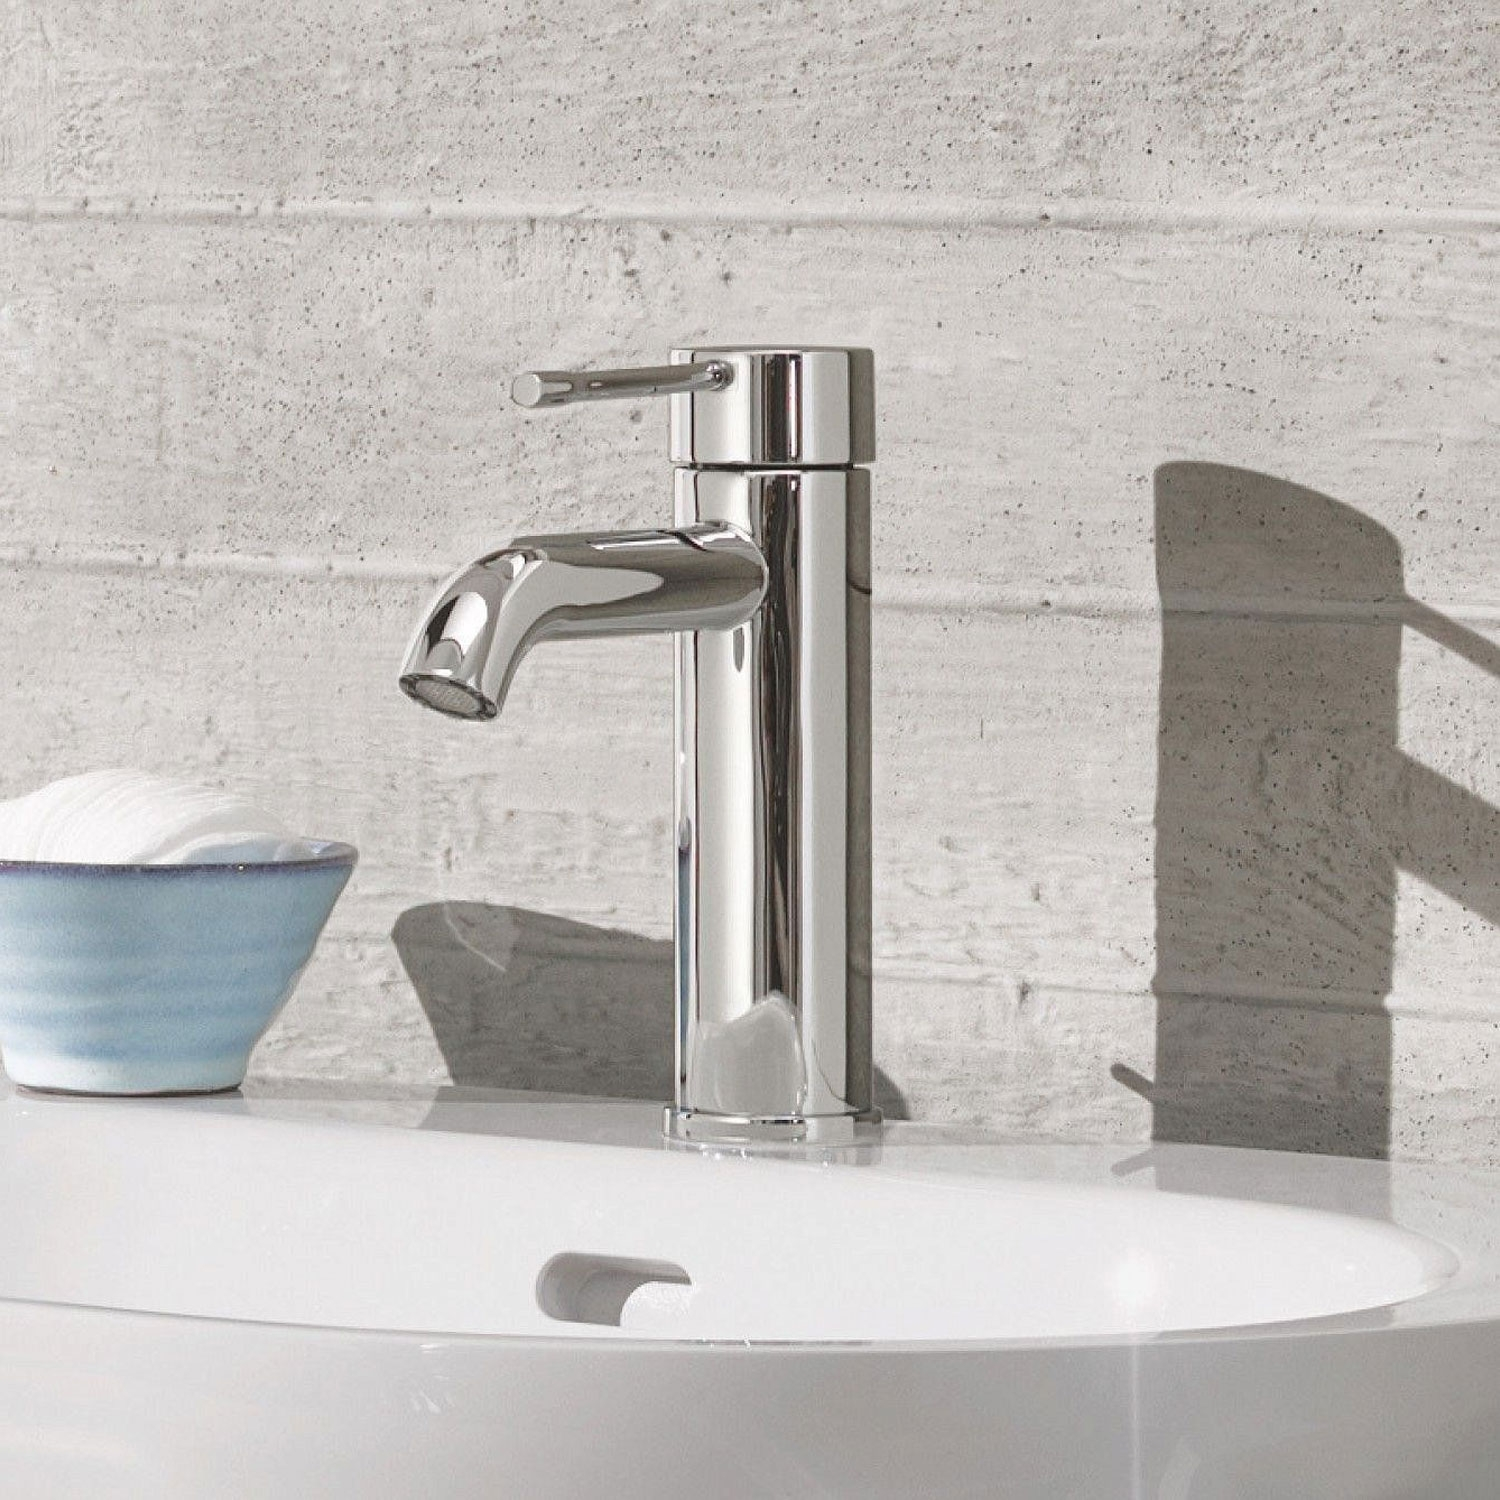 Grohe Essence Deck Mounted Mini Basin Mixer Tap - Chrome